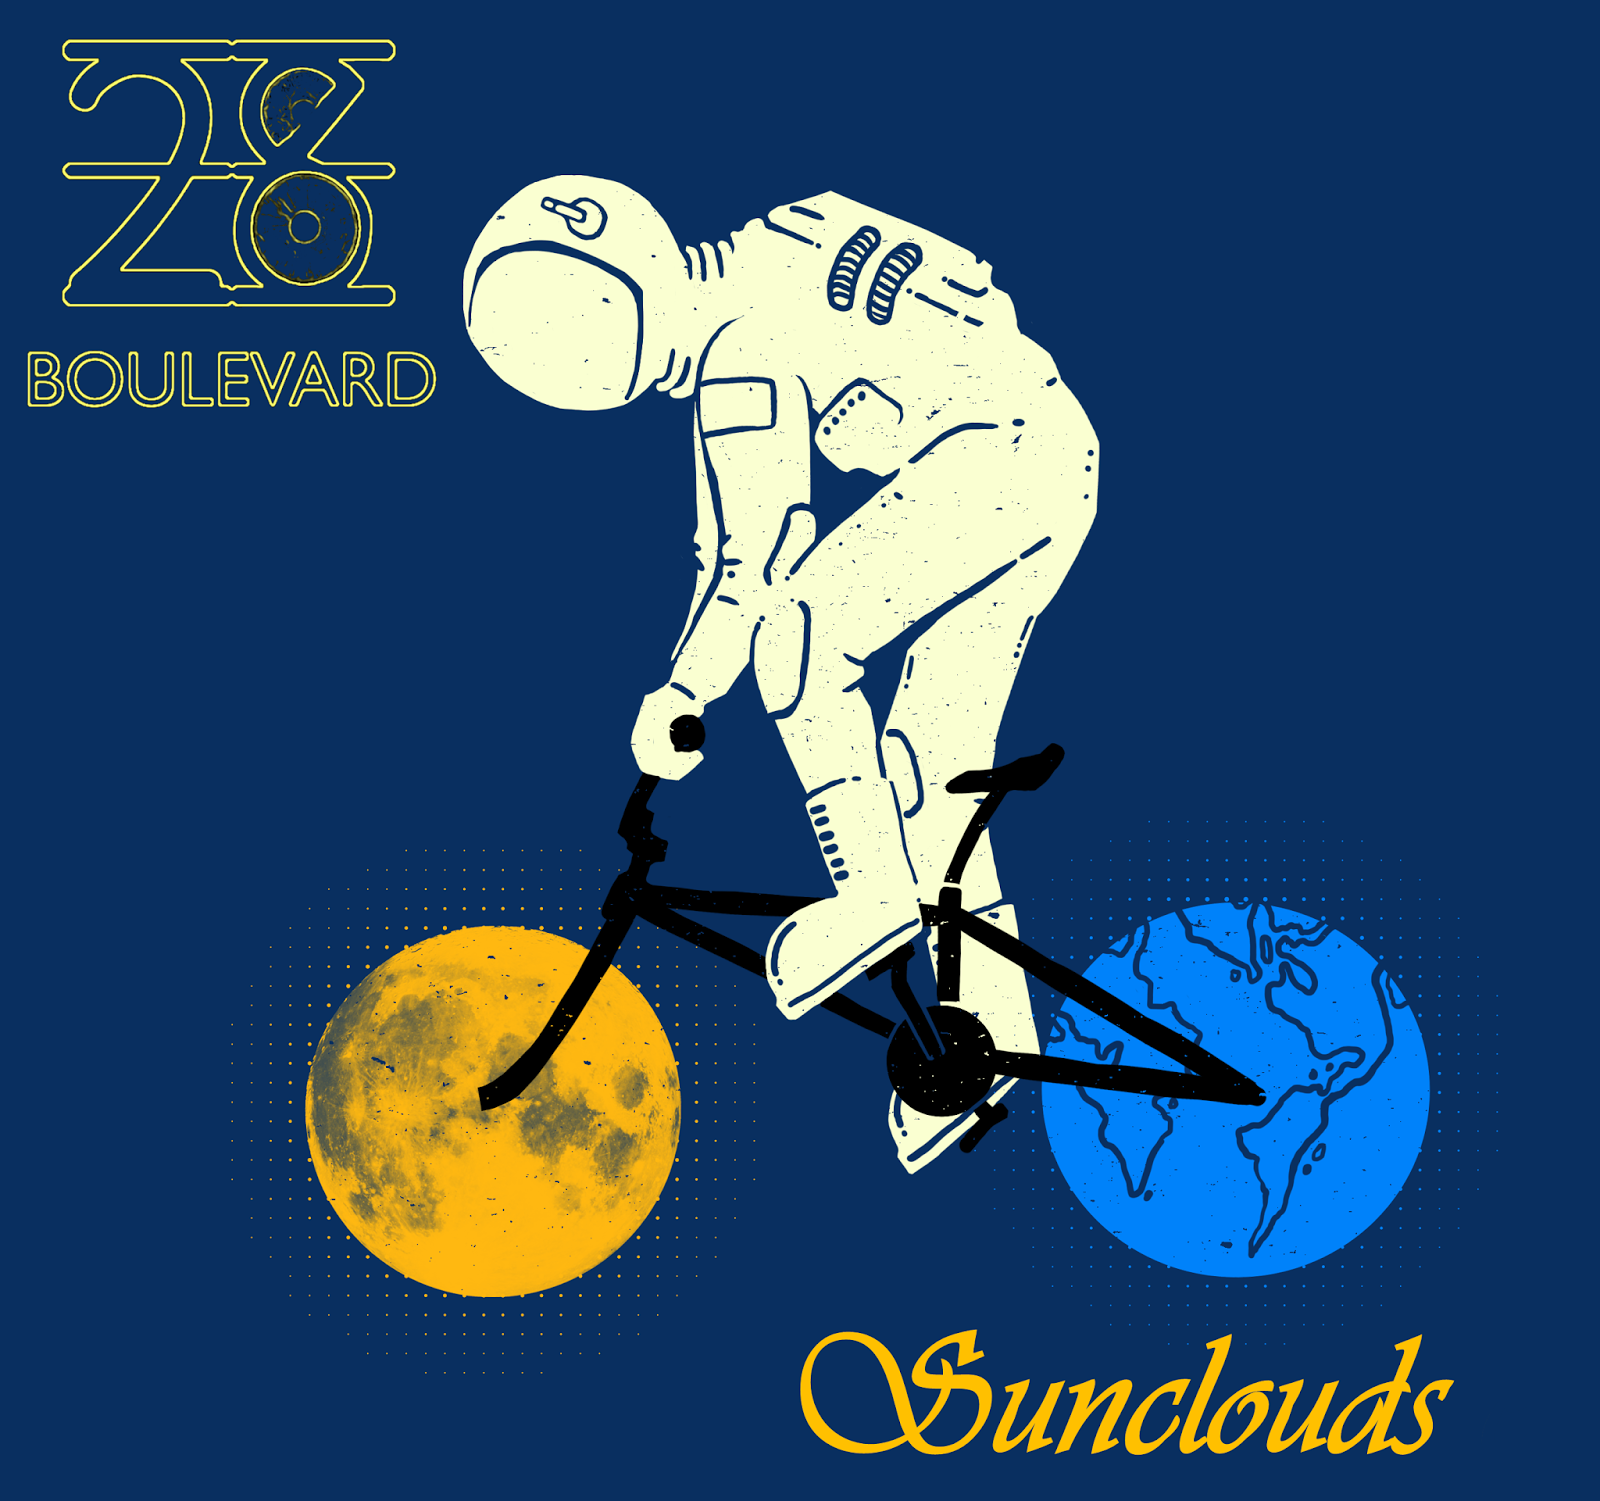 28 Boulevard release their latest five-track EP, Sunclouds